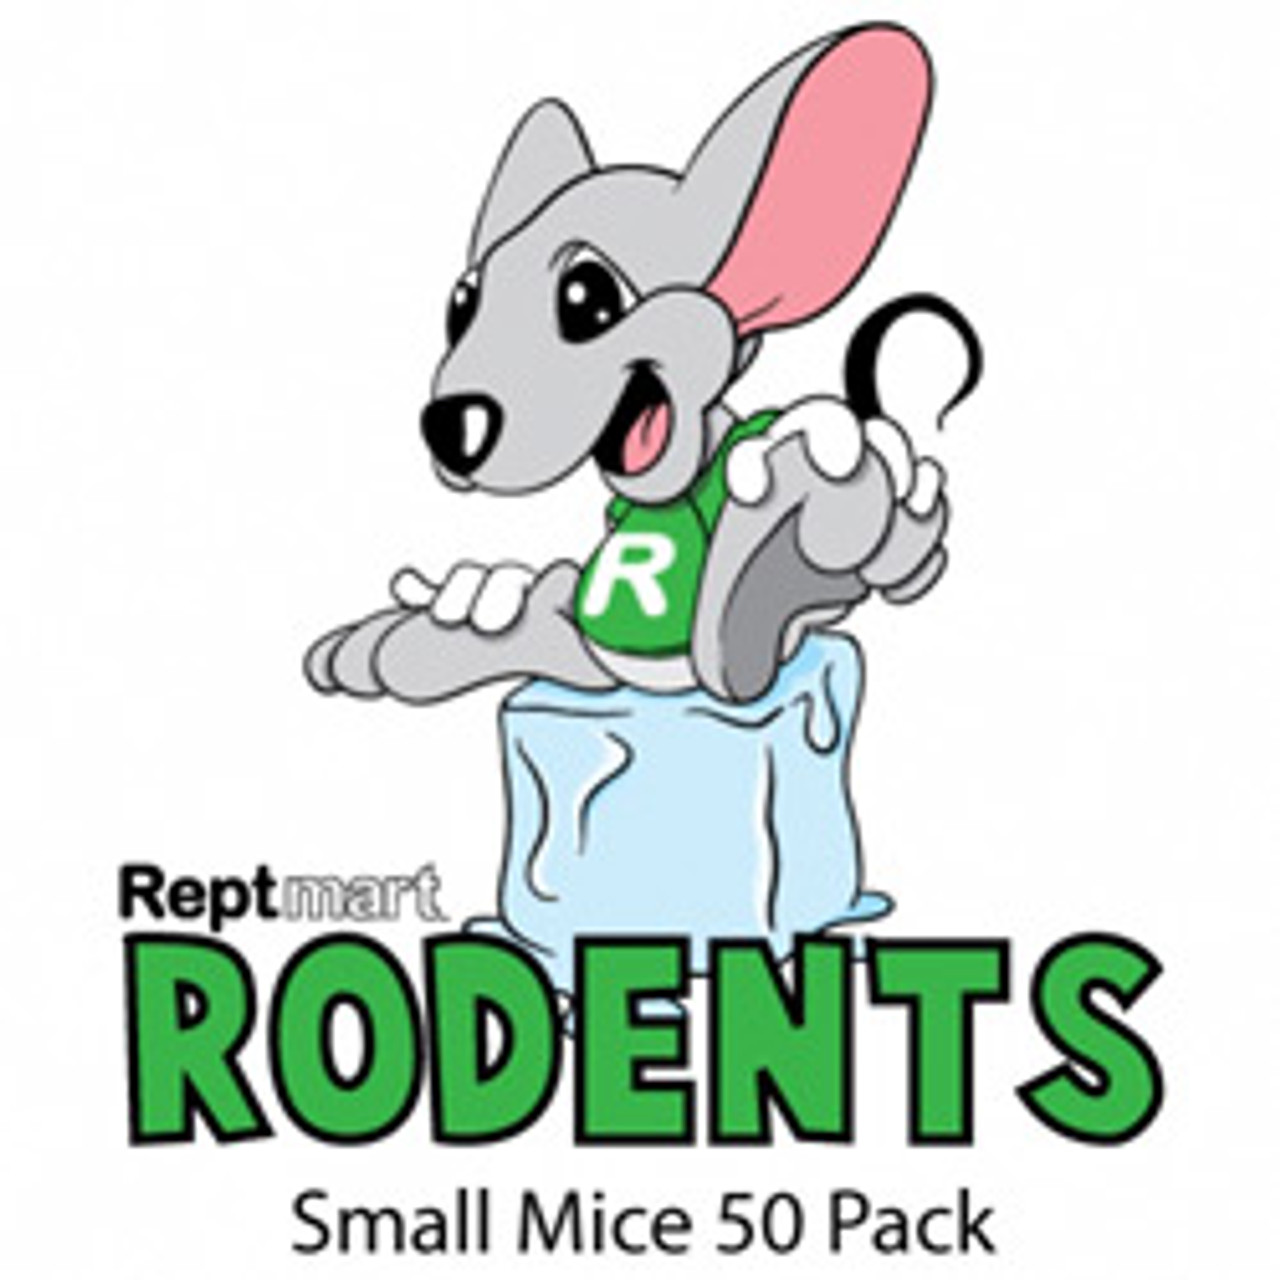 Small Mice 50 Pack (7-12g)